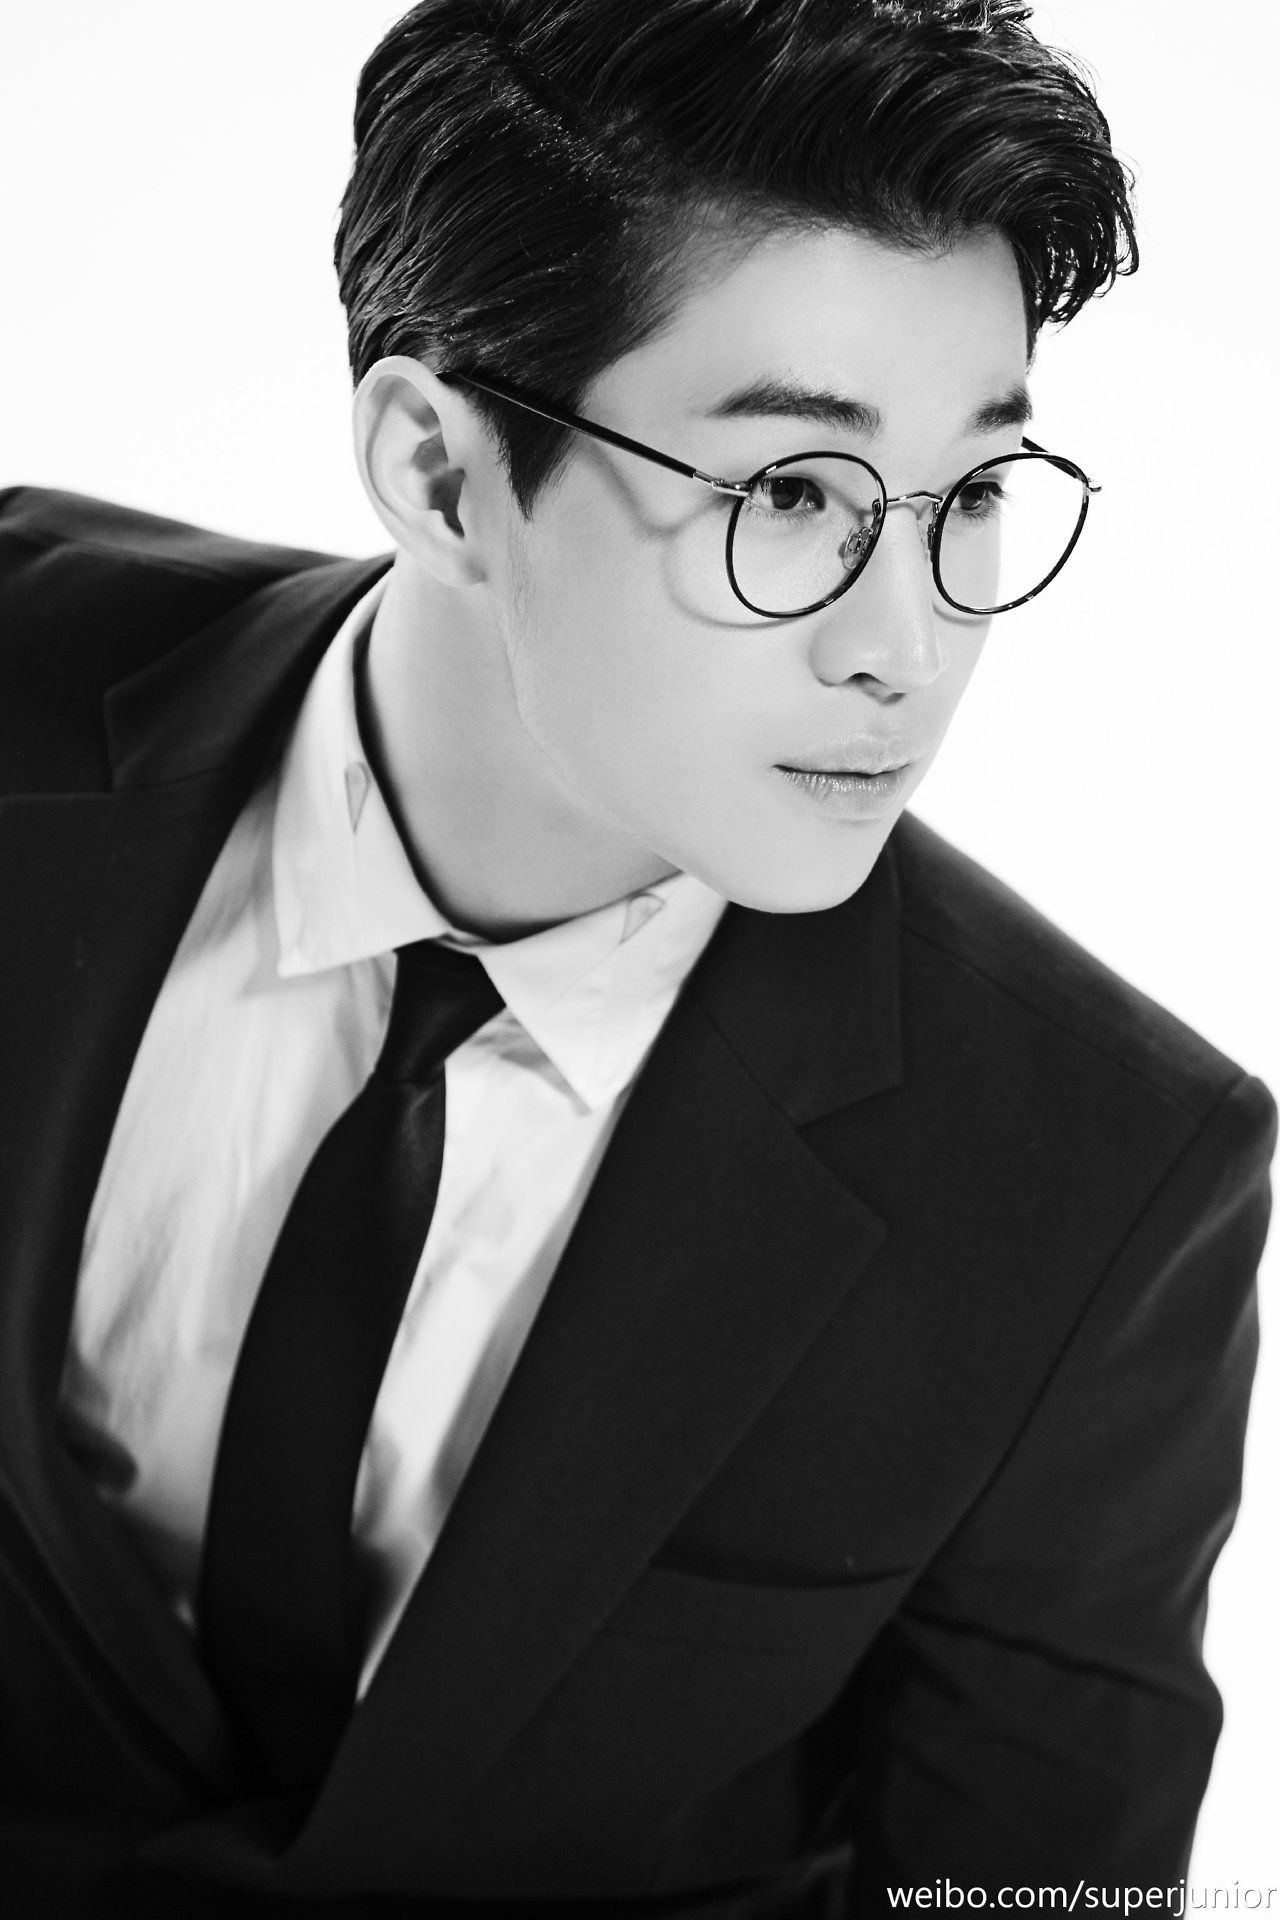 K Pop Idols In Suits Henry Lau Super Junior Lau